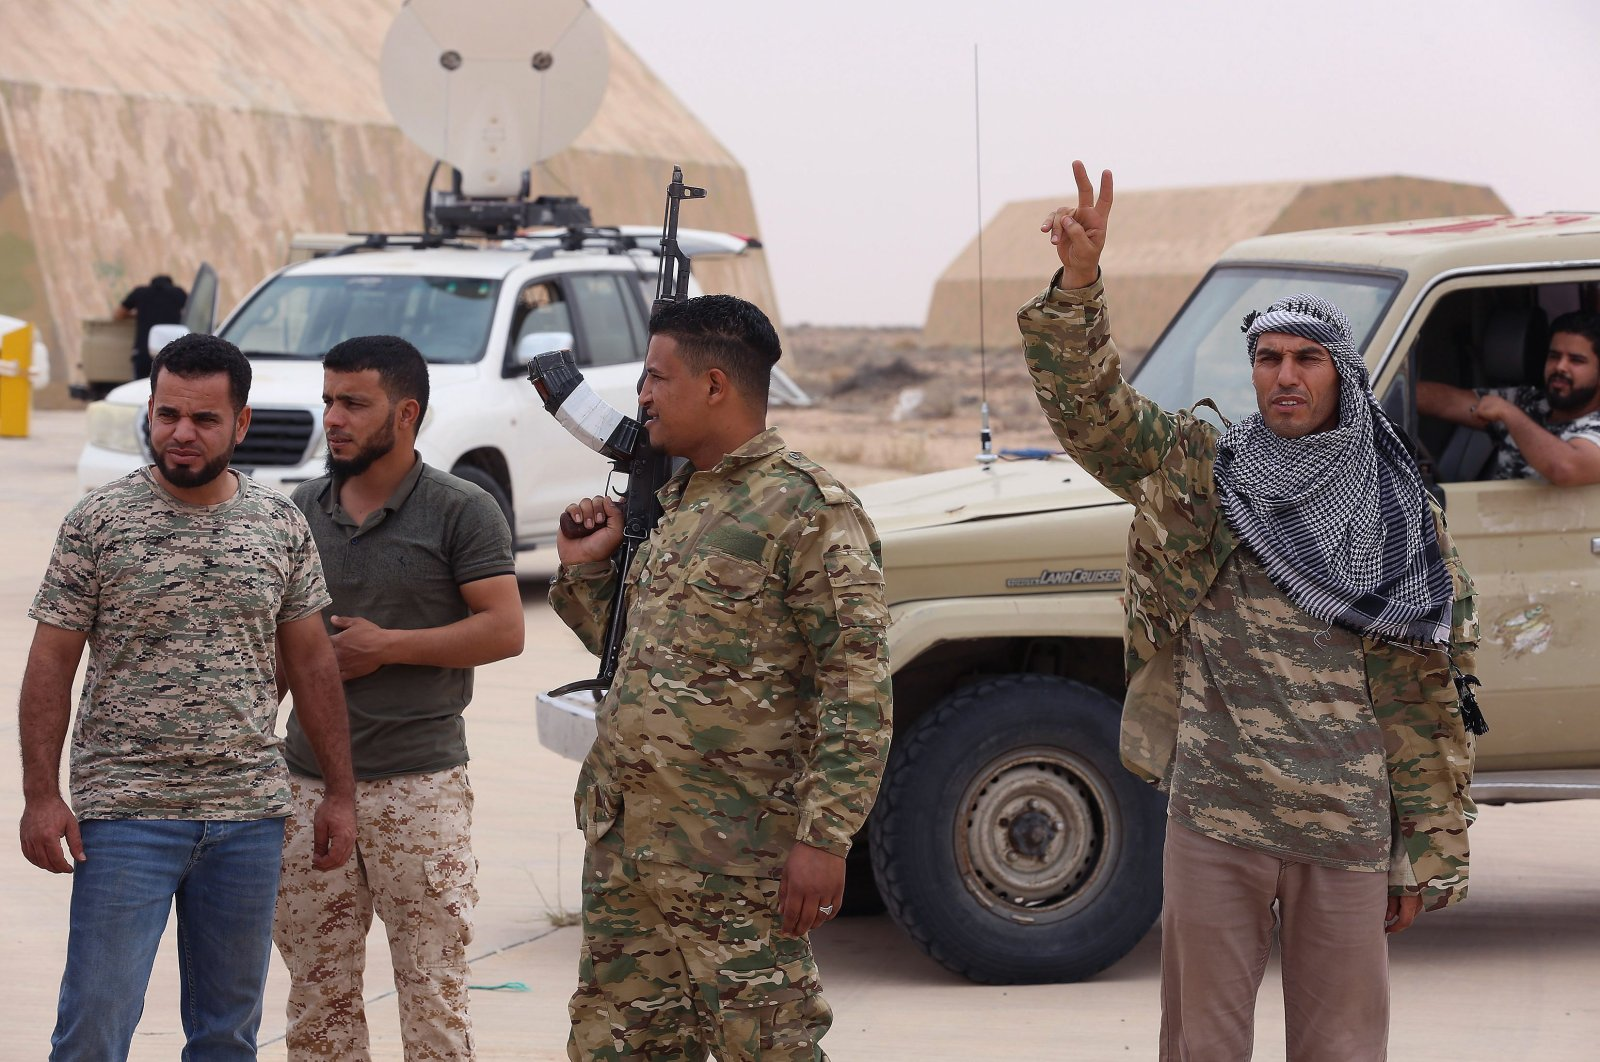 Fighters loyal to Libya's UN-recognised Government of National Accord (GNA) stand outside a hangar at Al-Watiya airbase, which they seized control of, southwest of the capital Tripoli, May 18, 2020. (AFP)